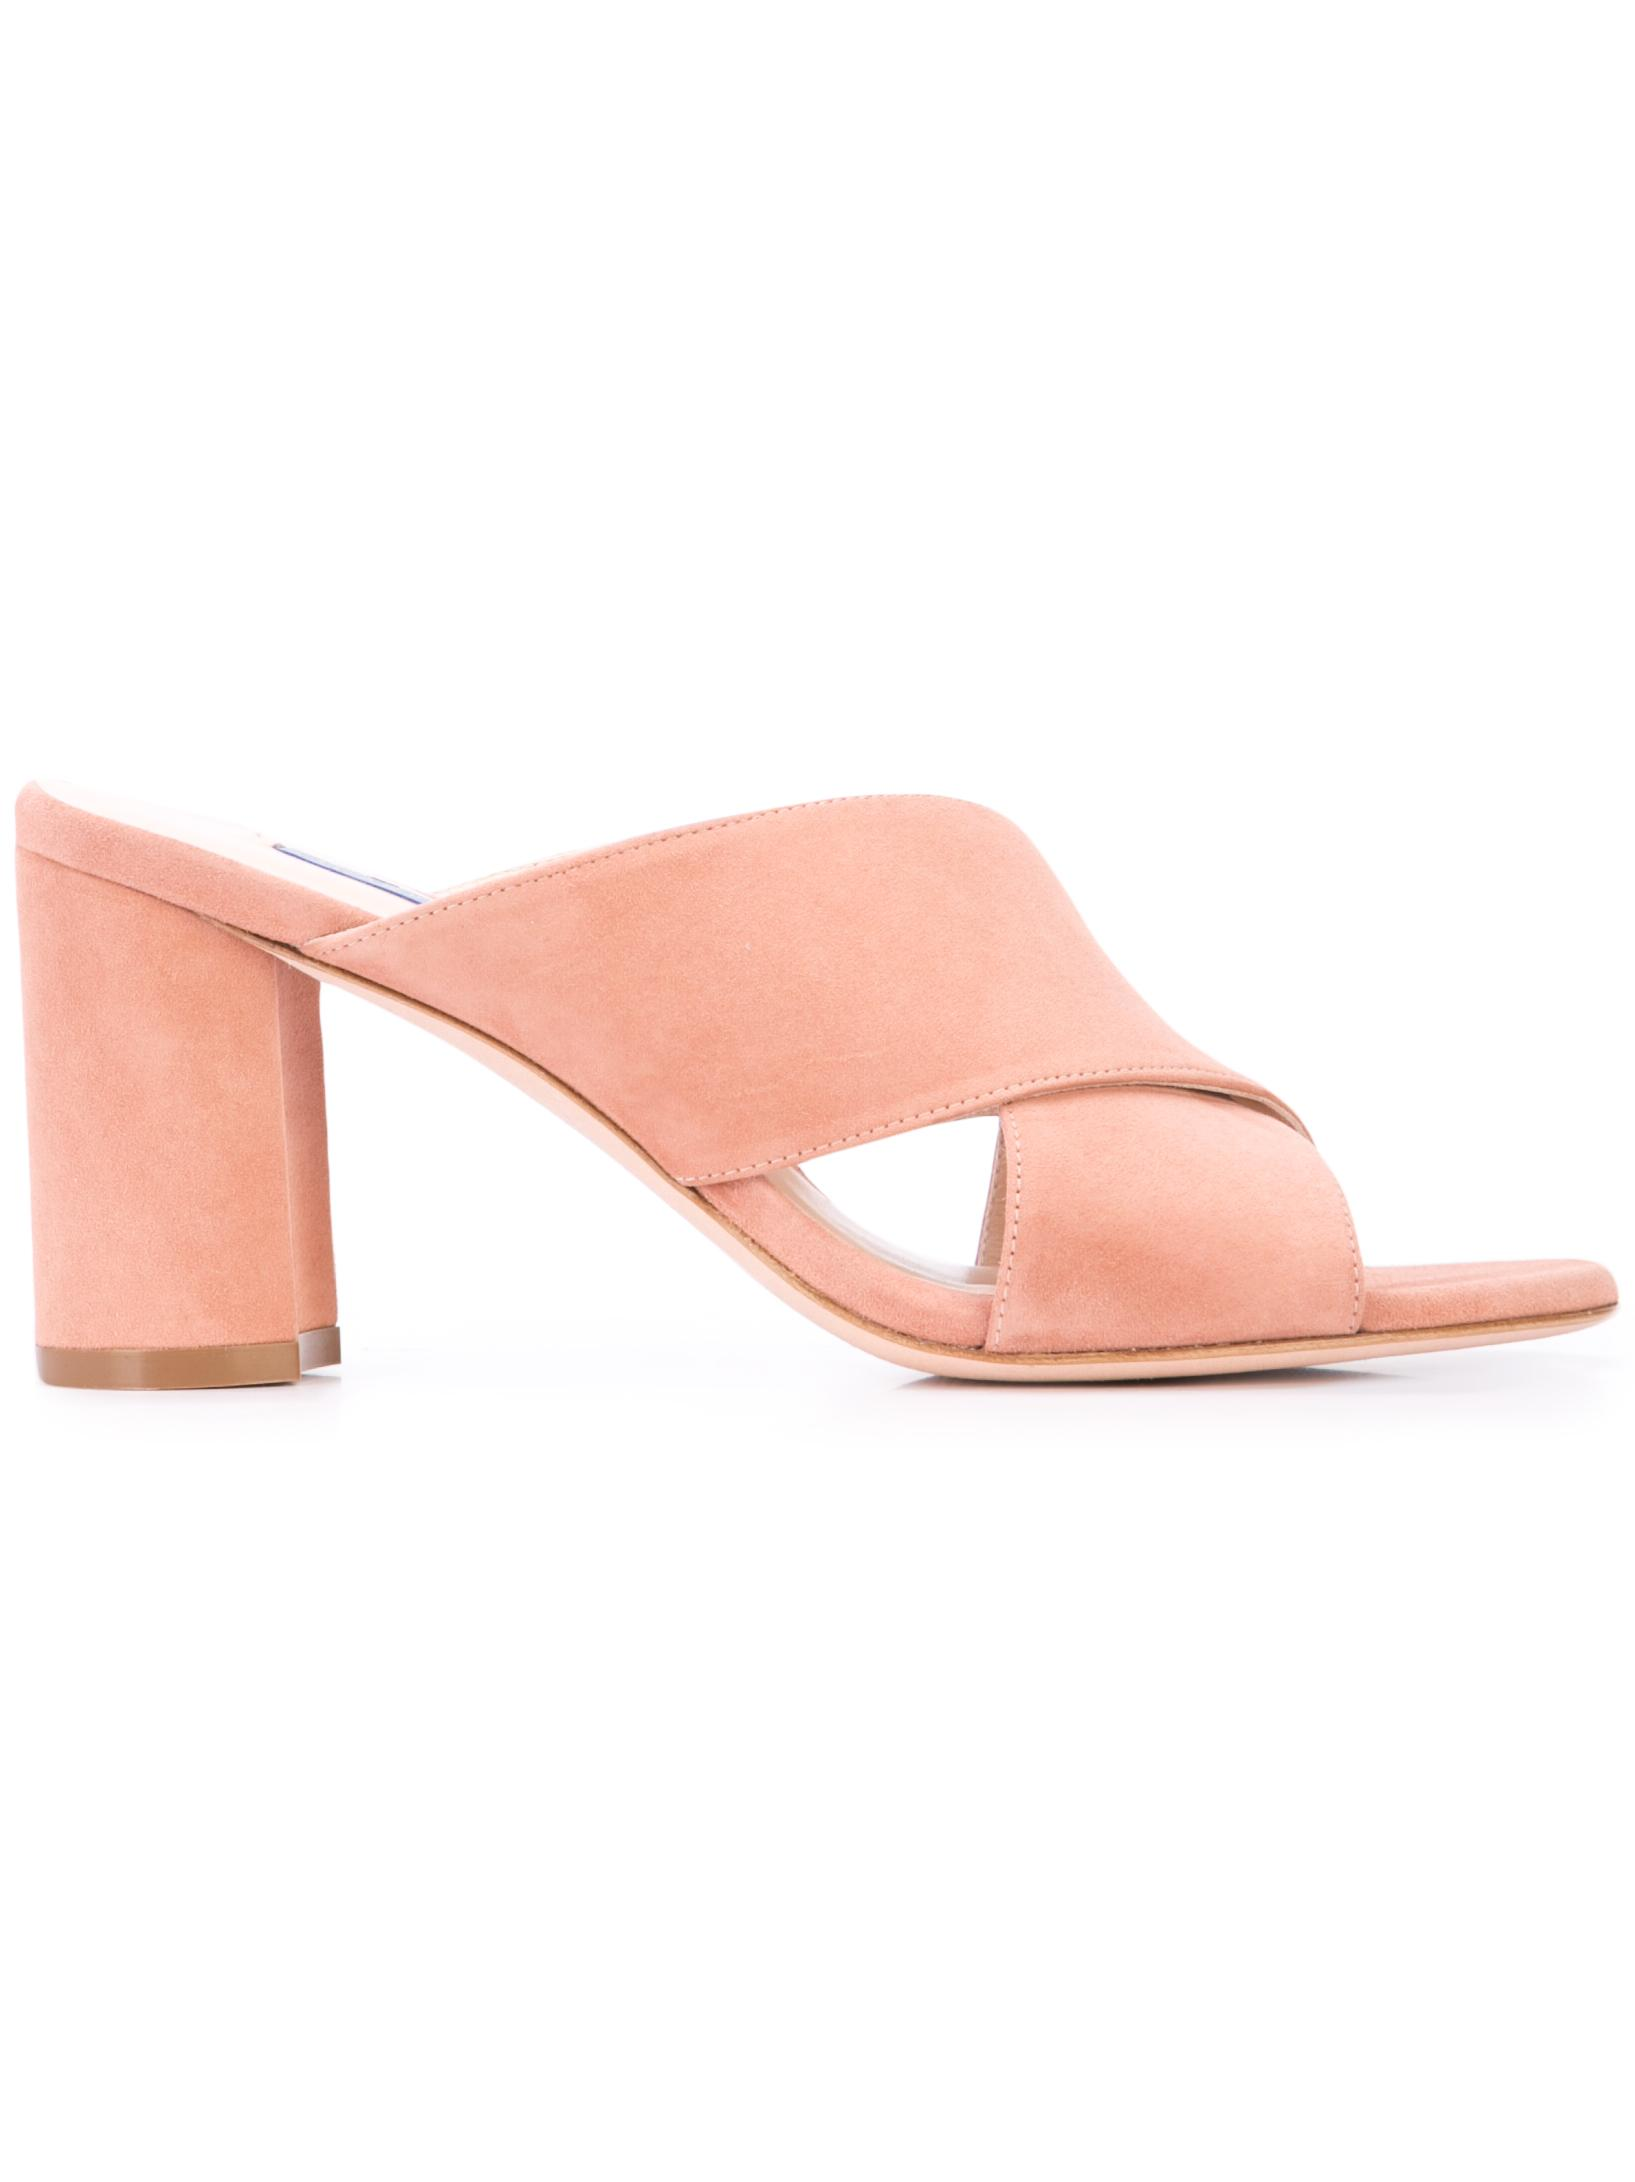 Suede Criss Cross Block Heel Mule